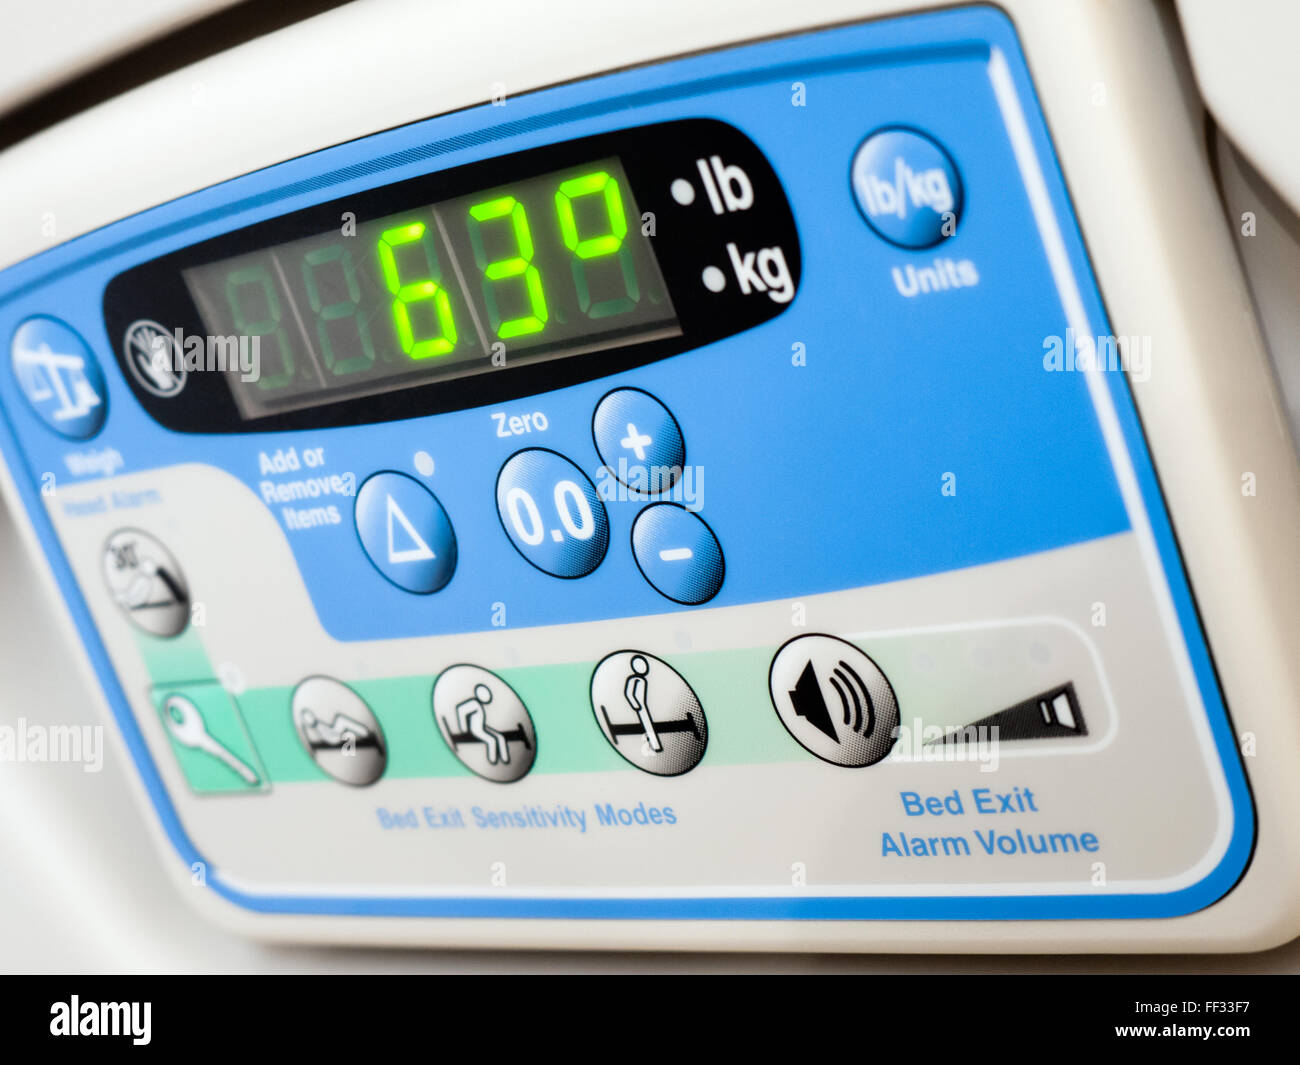 Hospital bed electronic weight scale that weighs patient while in bed - Stock Image